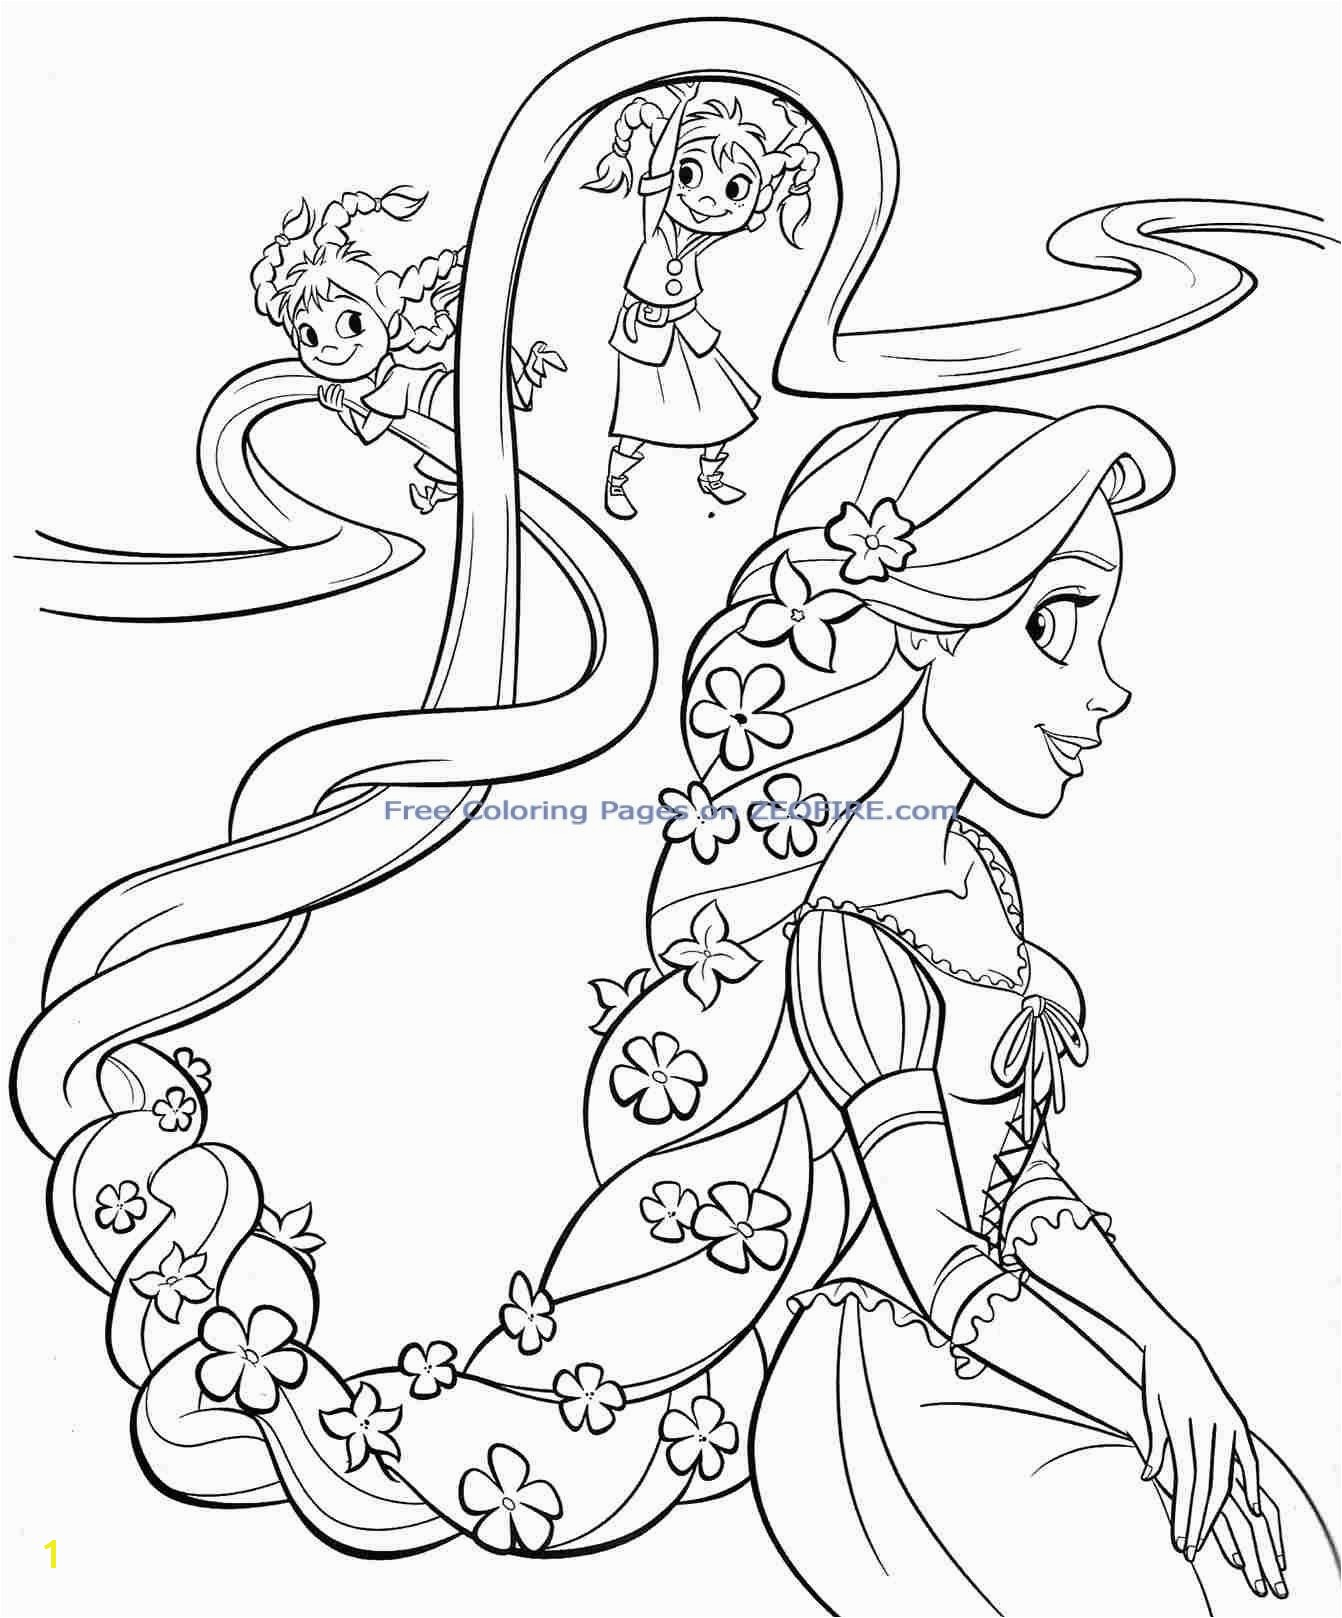 Disney Princess Coloring Pages Free to Print Lovely New Chuggington Coloring Pages Free Printabl Pin Od